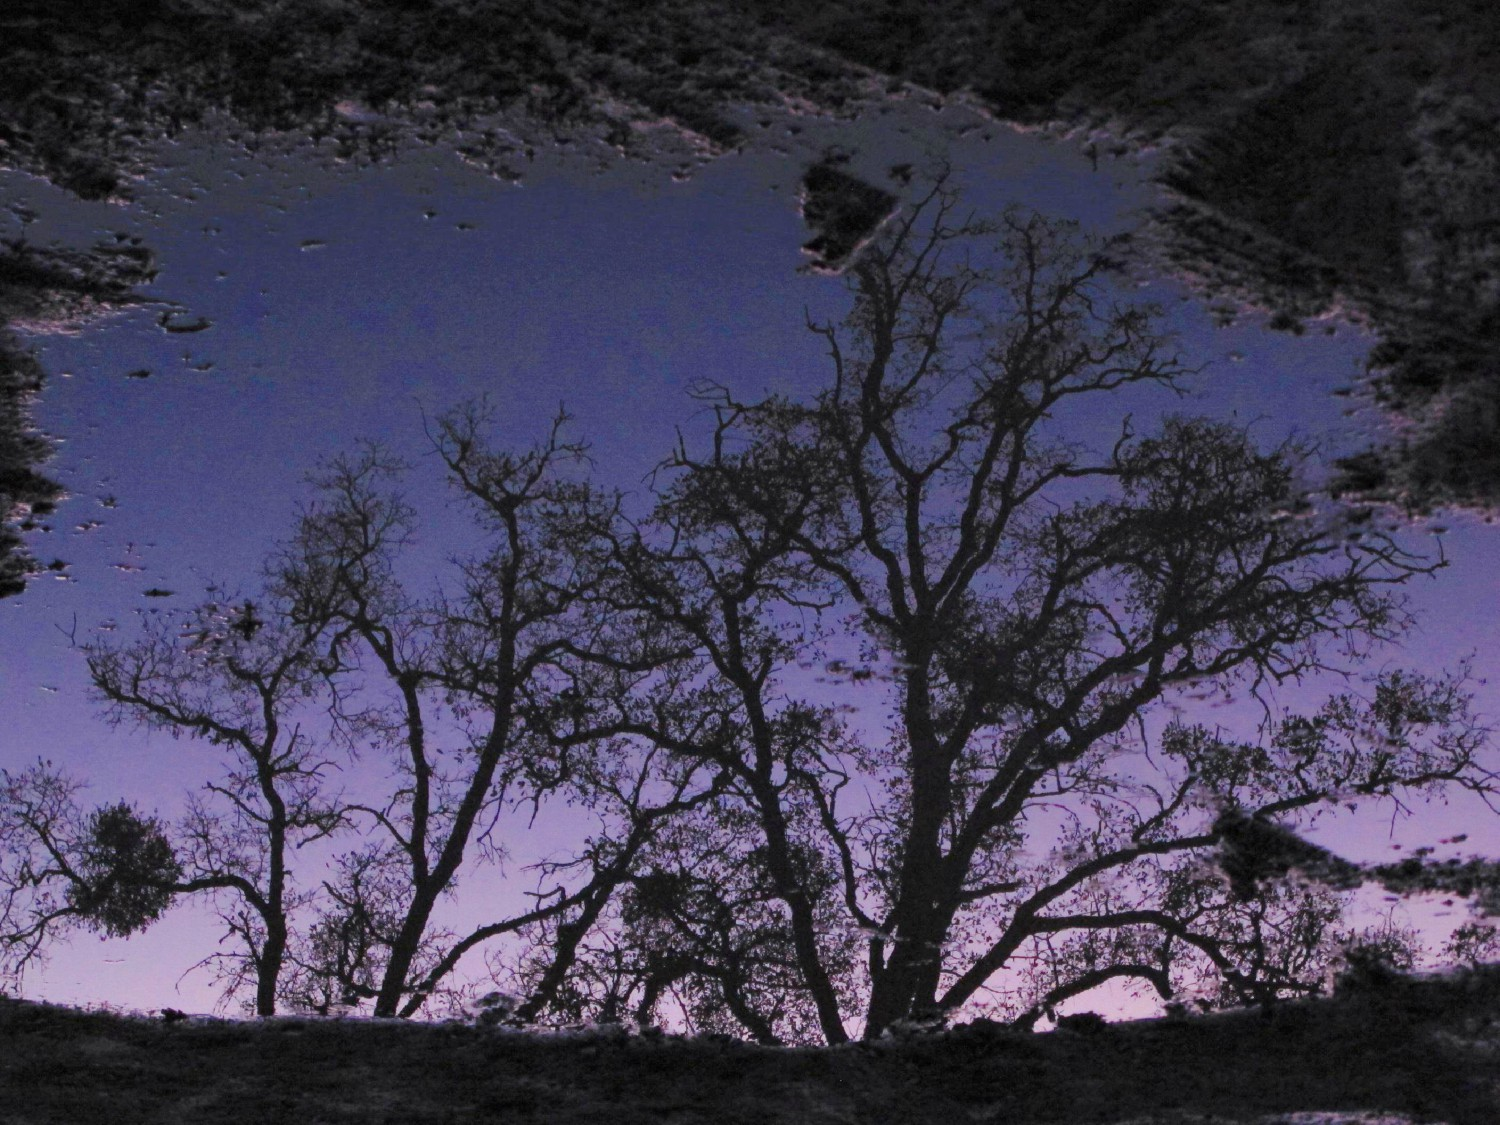 tree reflection in puddle author dreizler bob